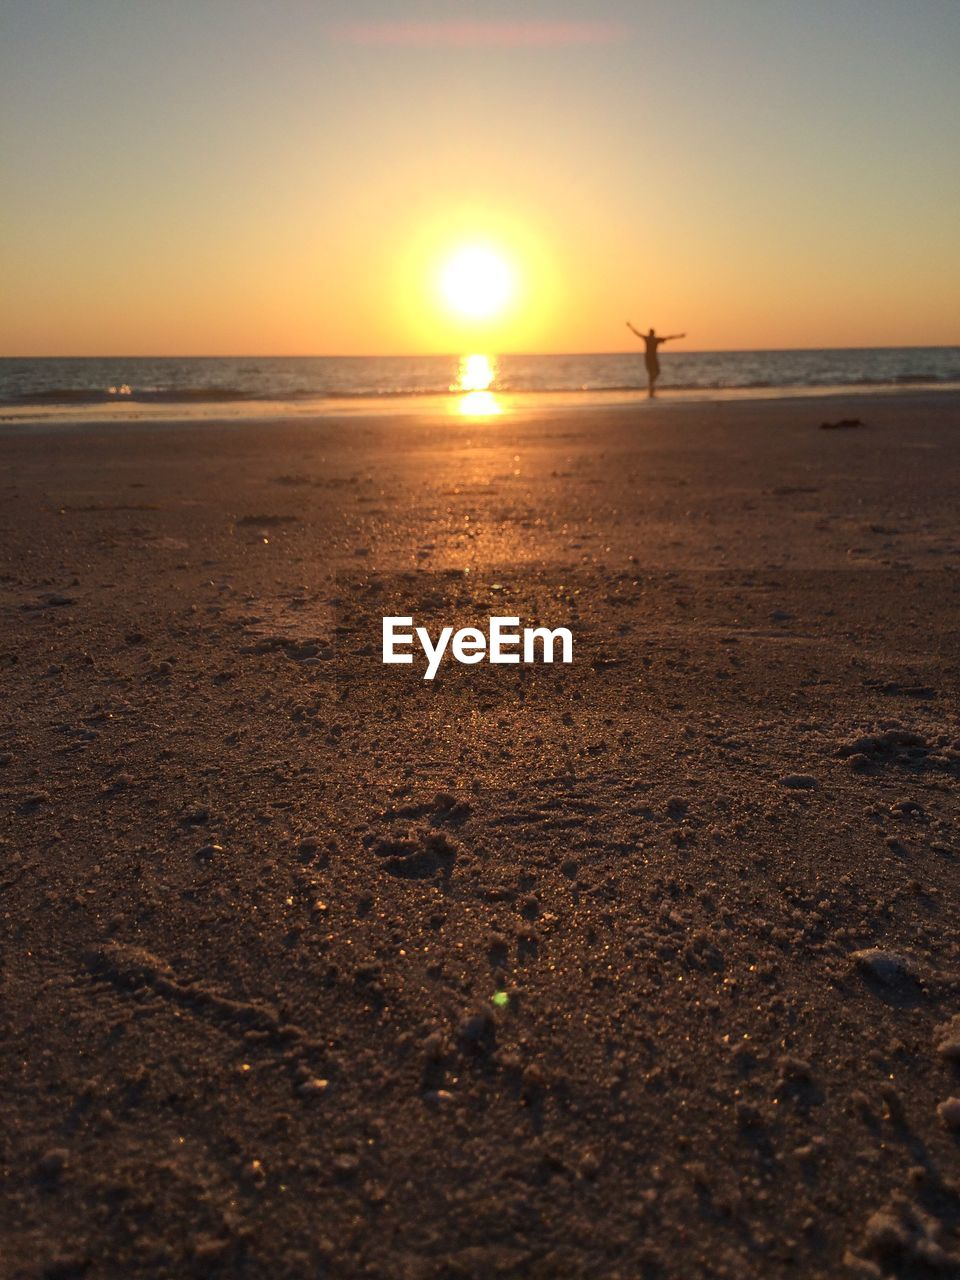 sunset, sea, sun, scenics, nature, beauty in nature, beach, horizon over water, water, tranquility, tranquil scene, sky, sunlight, sand, outdoors, no people, day